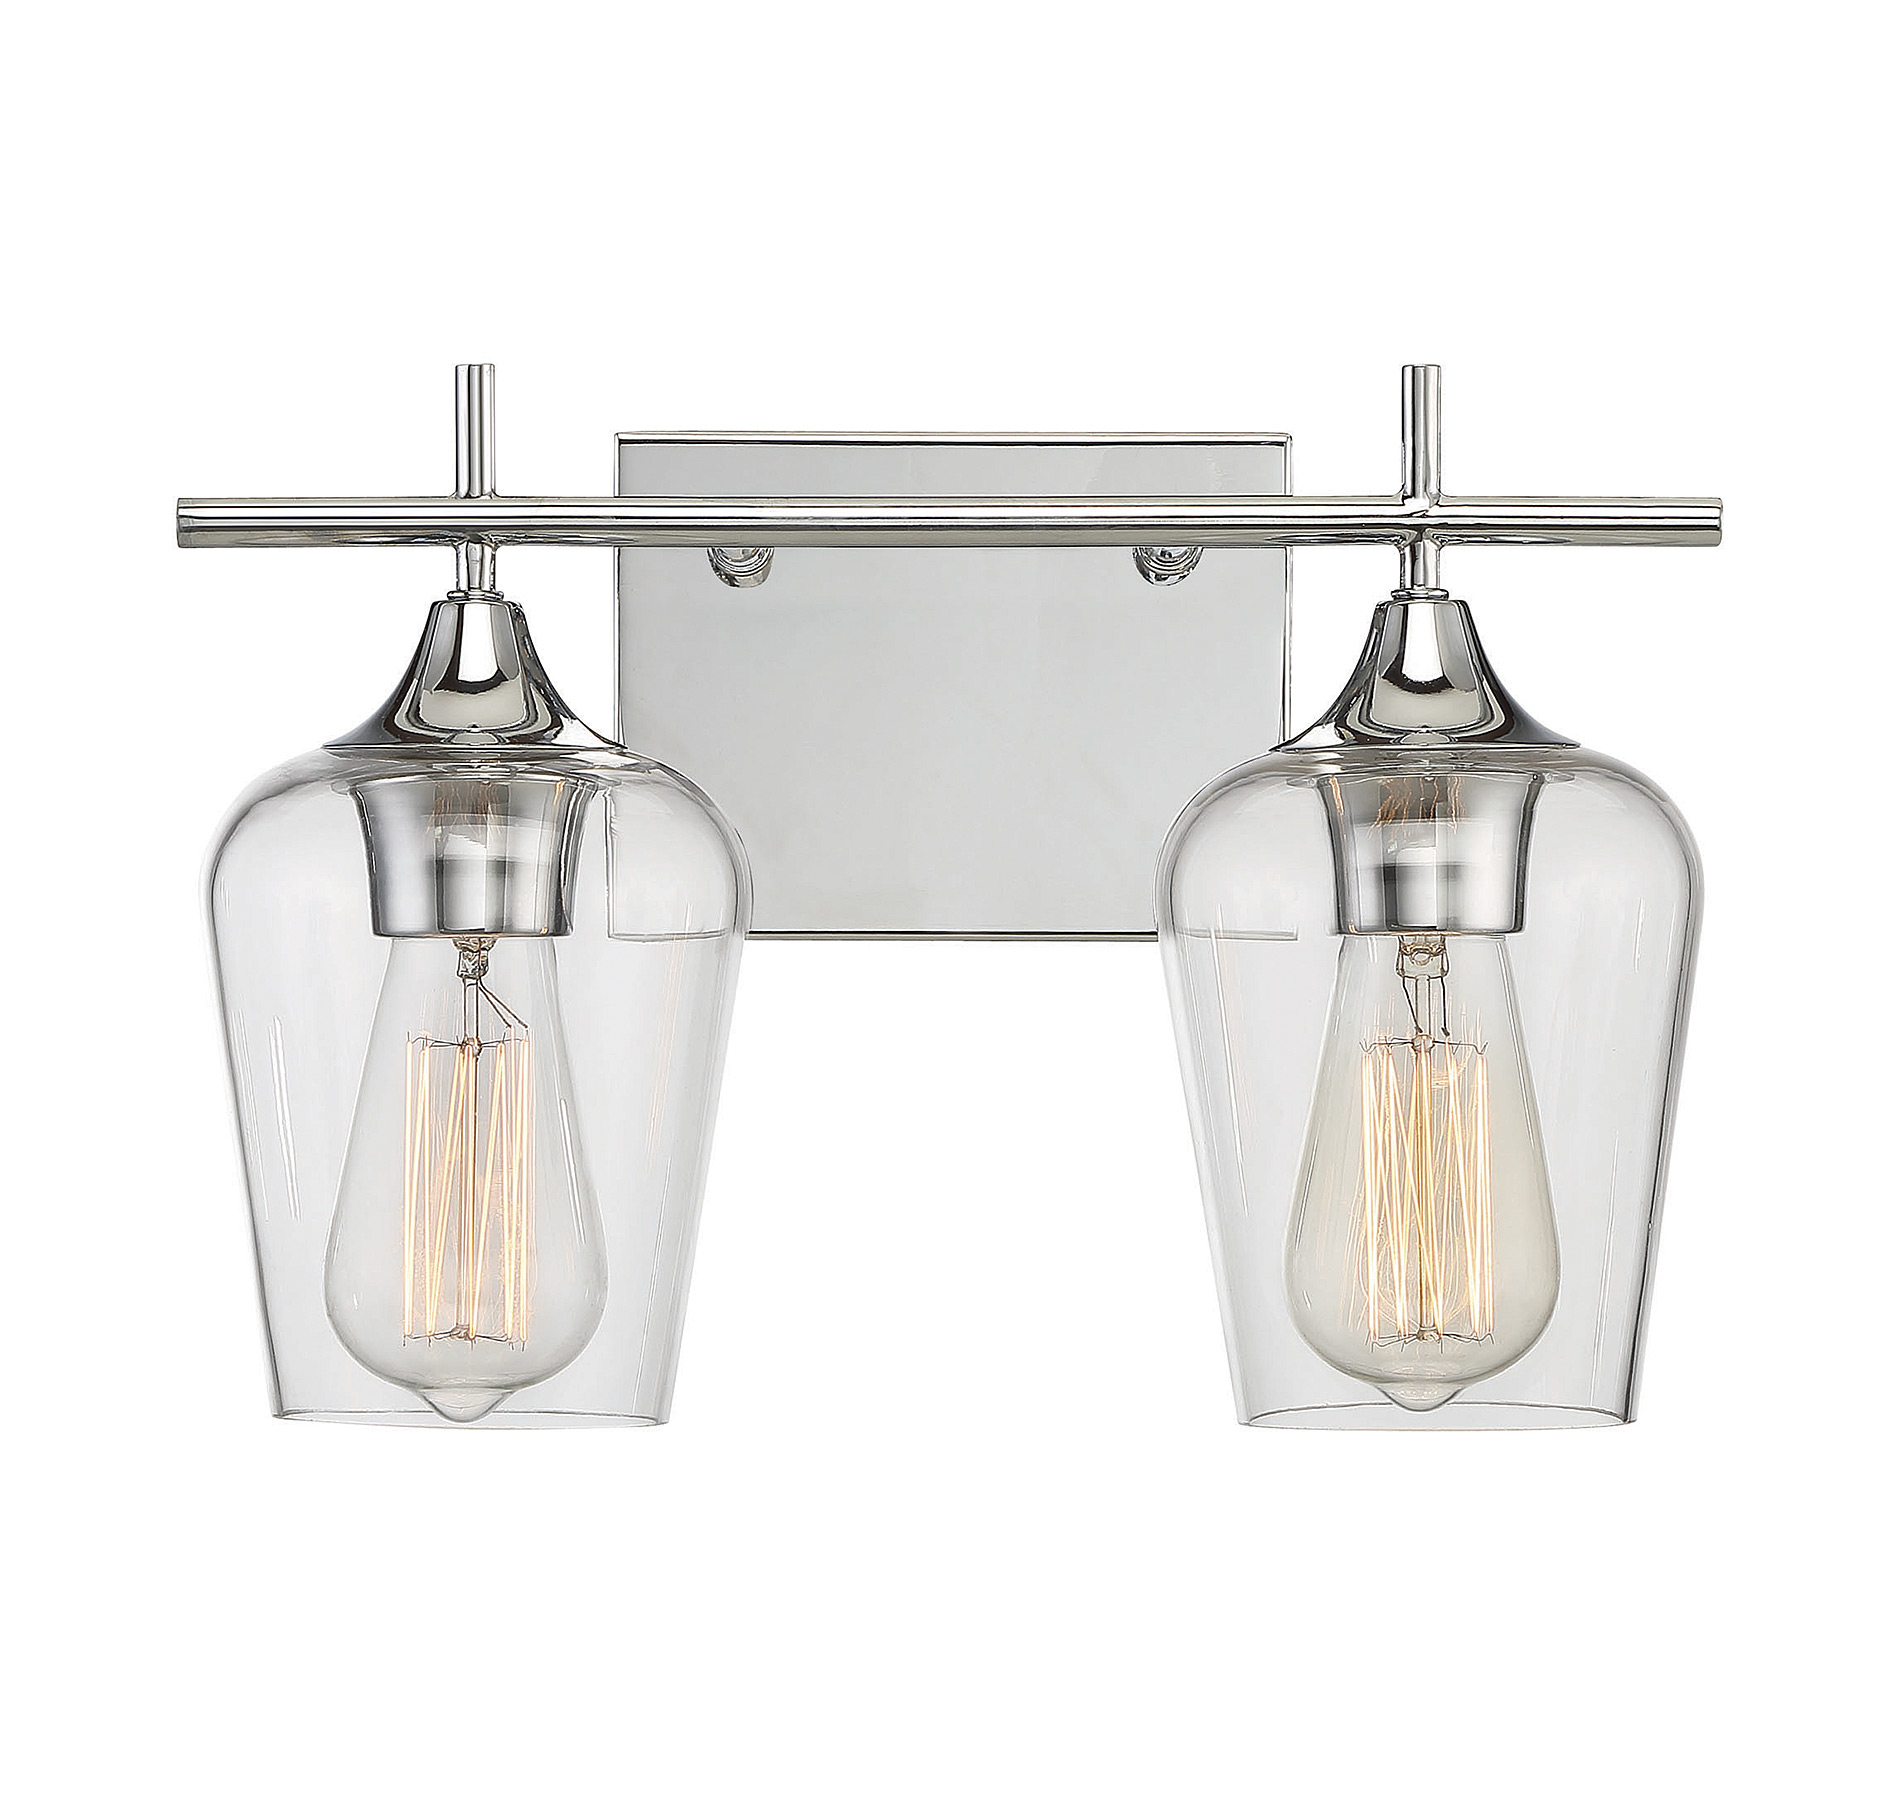 Octave Bathroom Vanity Light By Savoy House